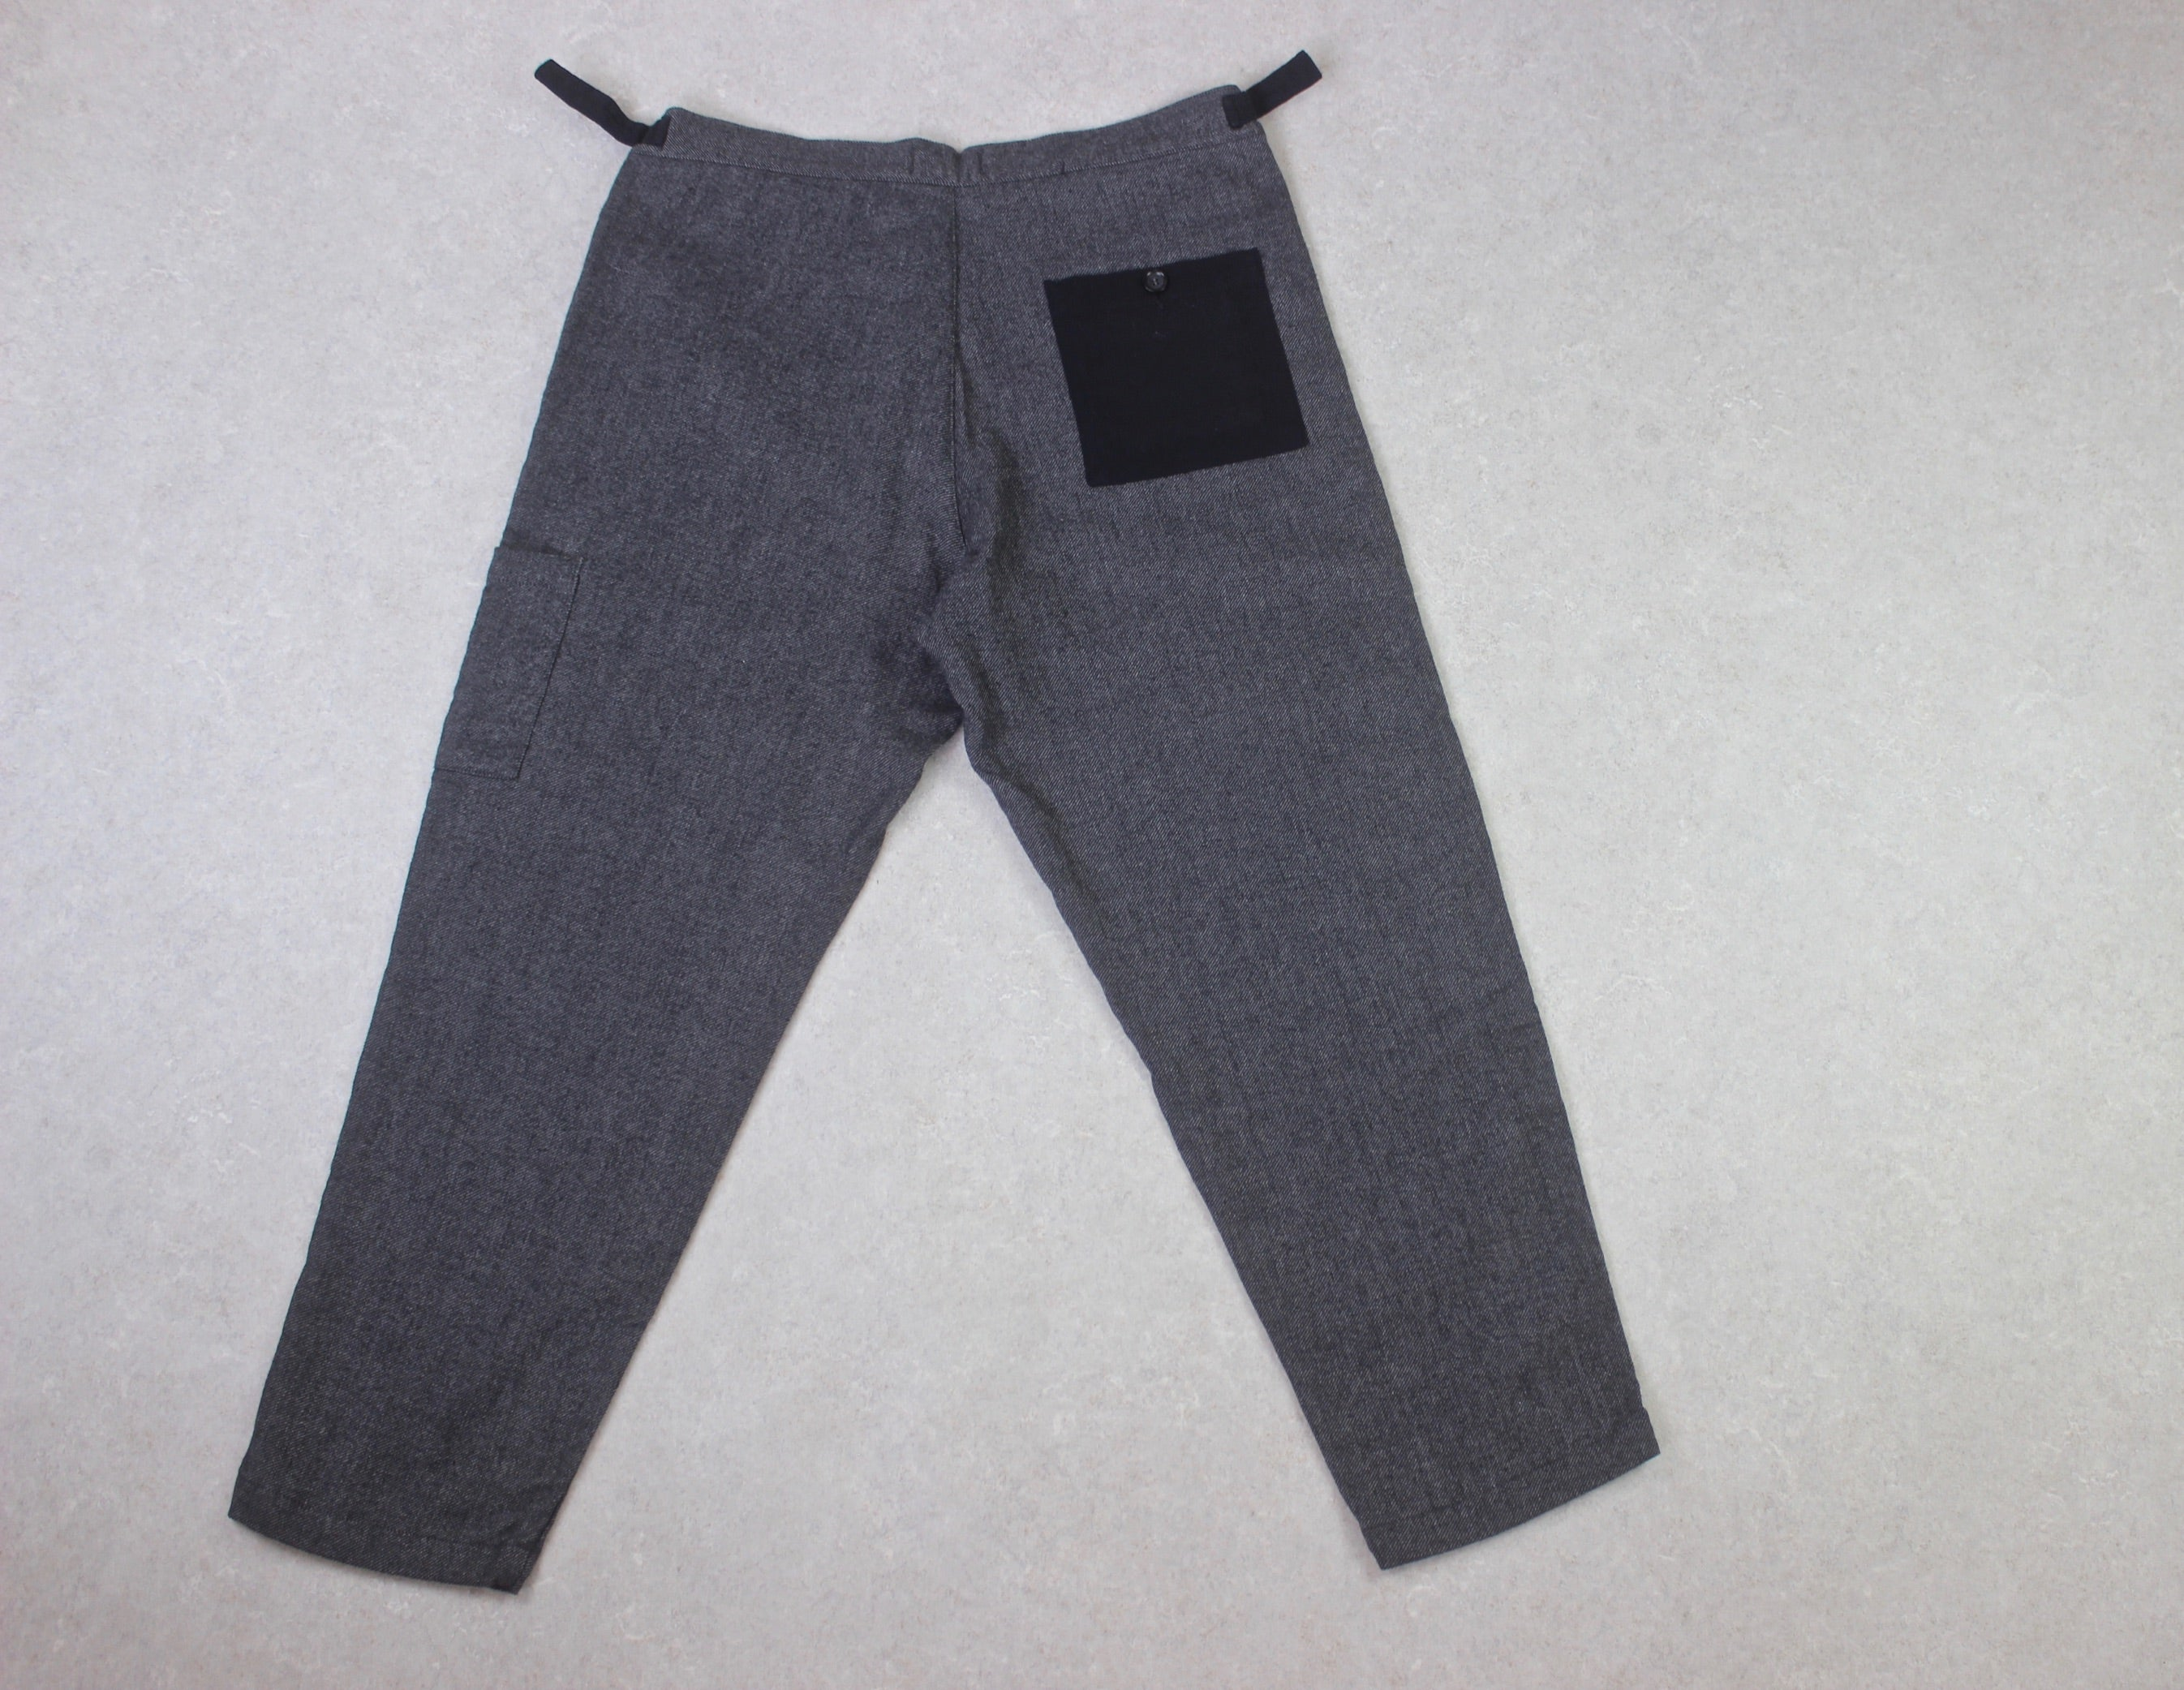 Oliver Spencer - Judo Pants Trousers - Grey/Navy Blue - Medium/34